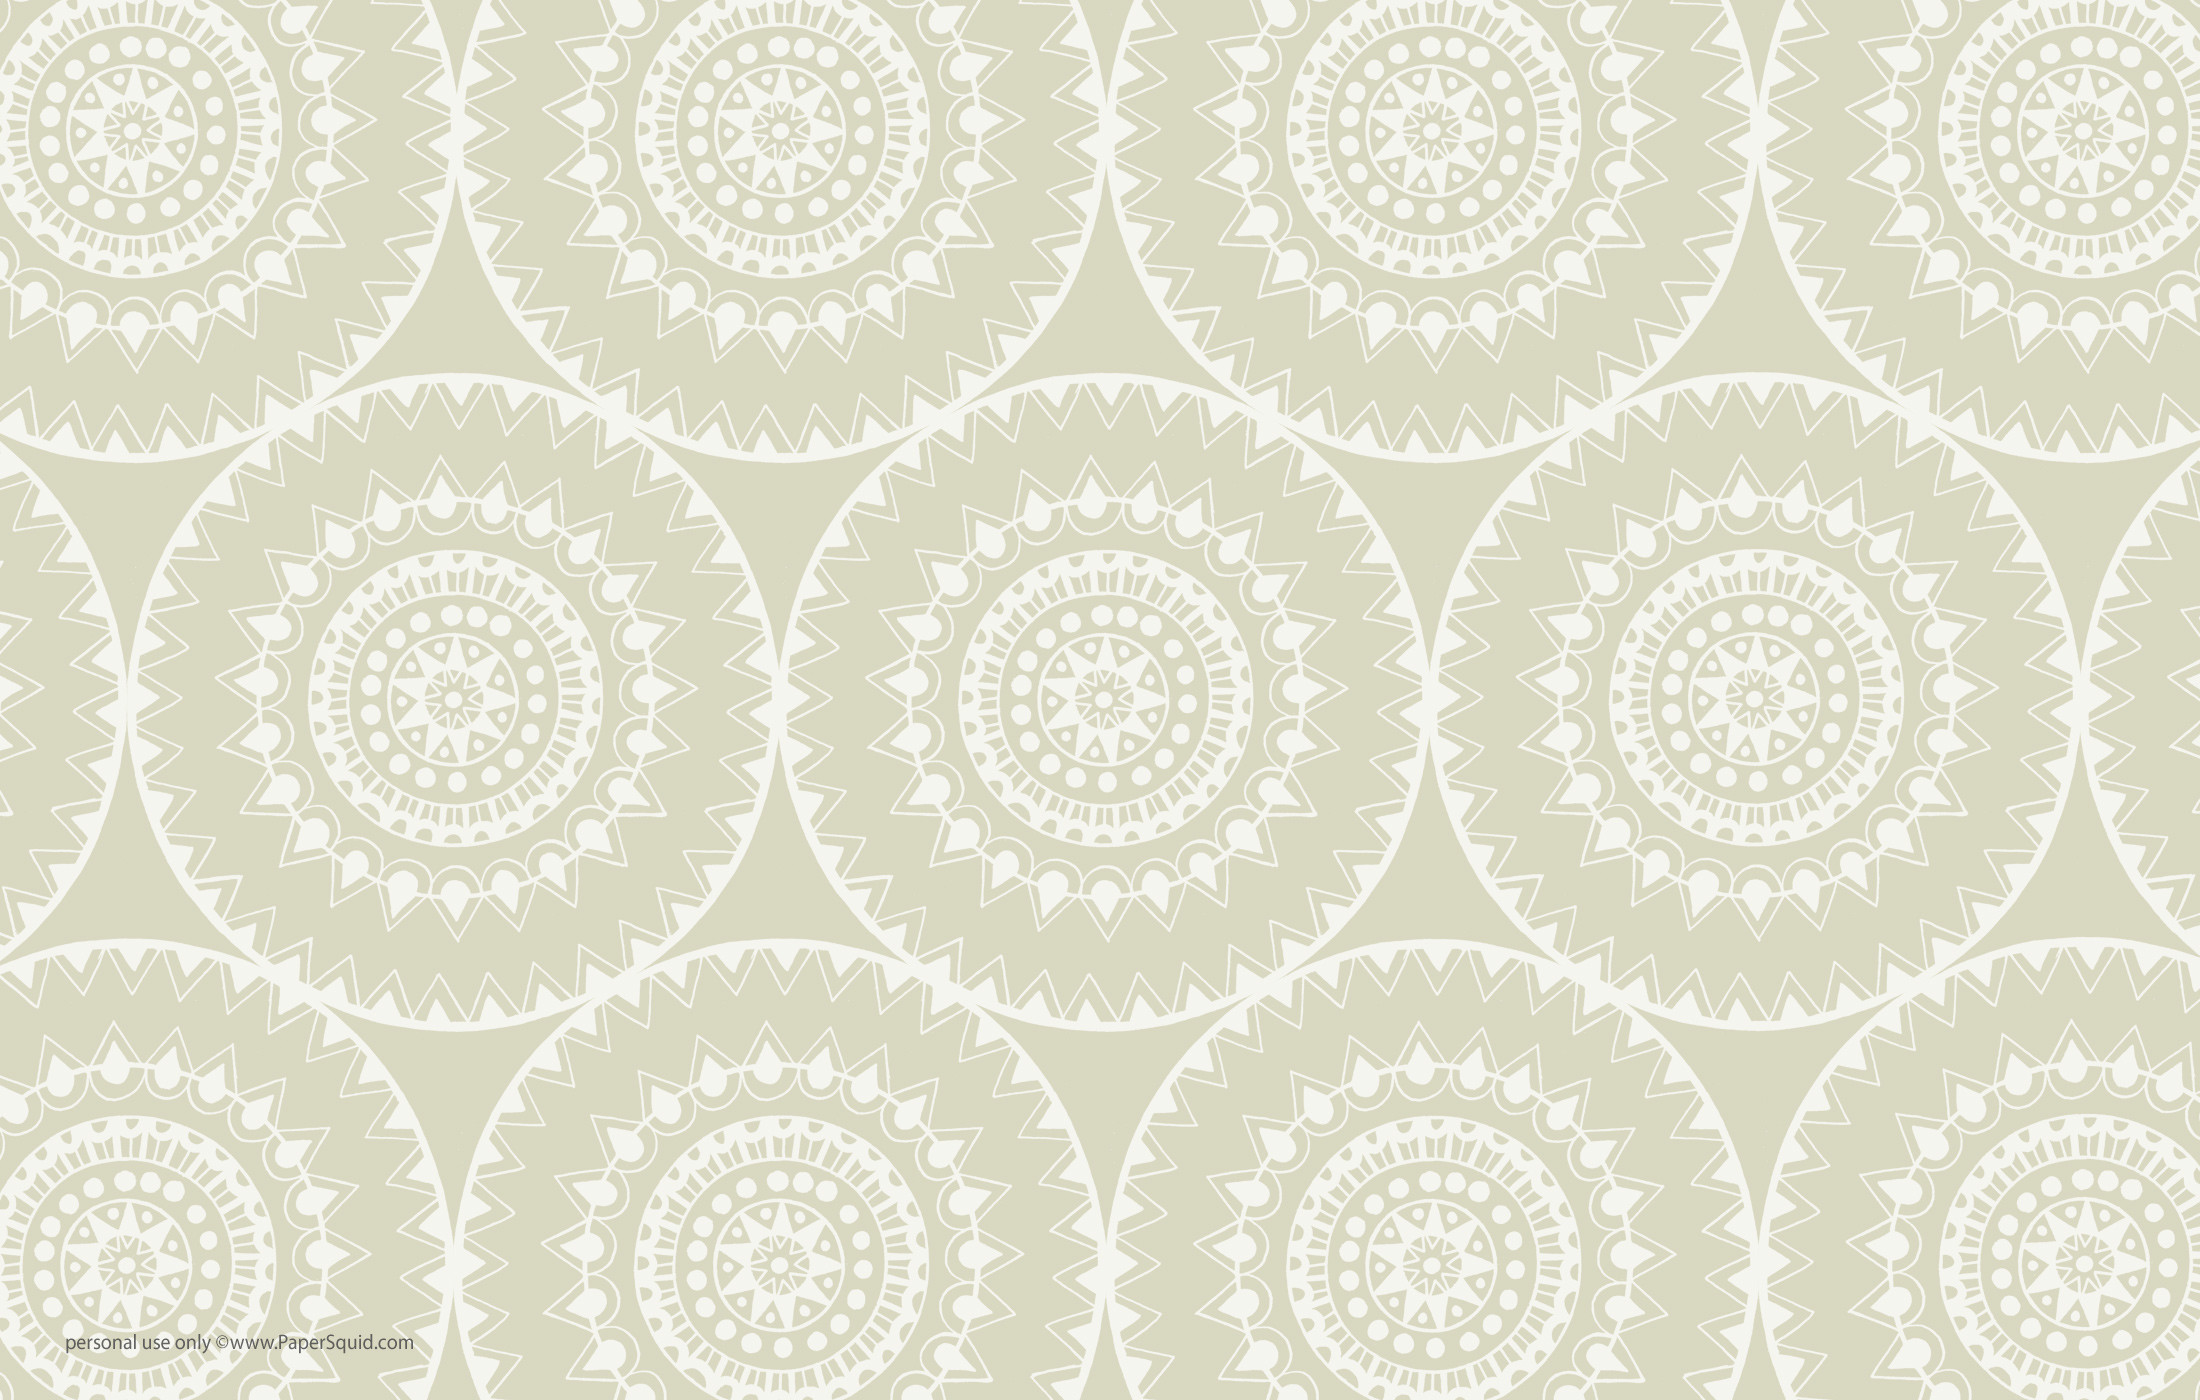 Desktop wallpaper patterns for Most popular wallpaper designs